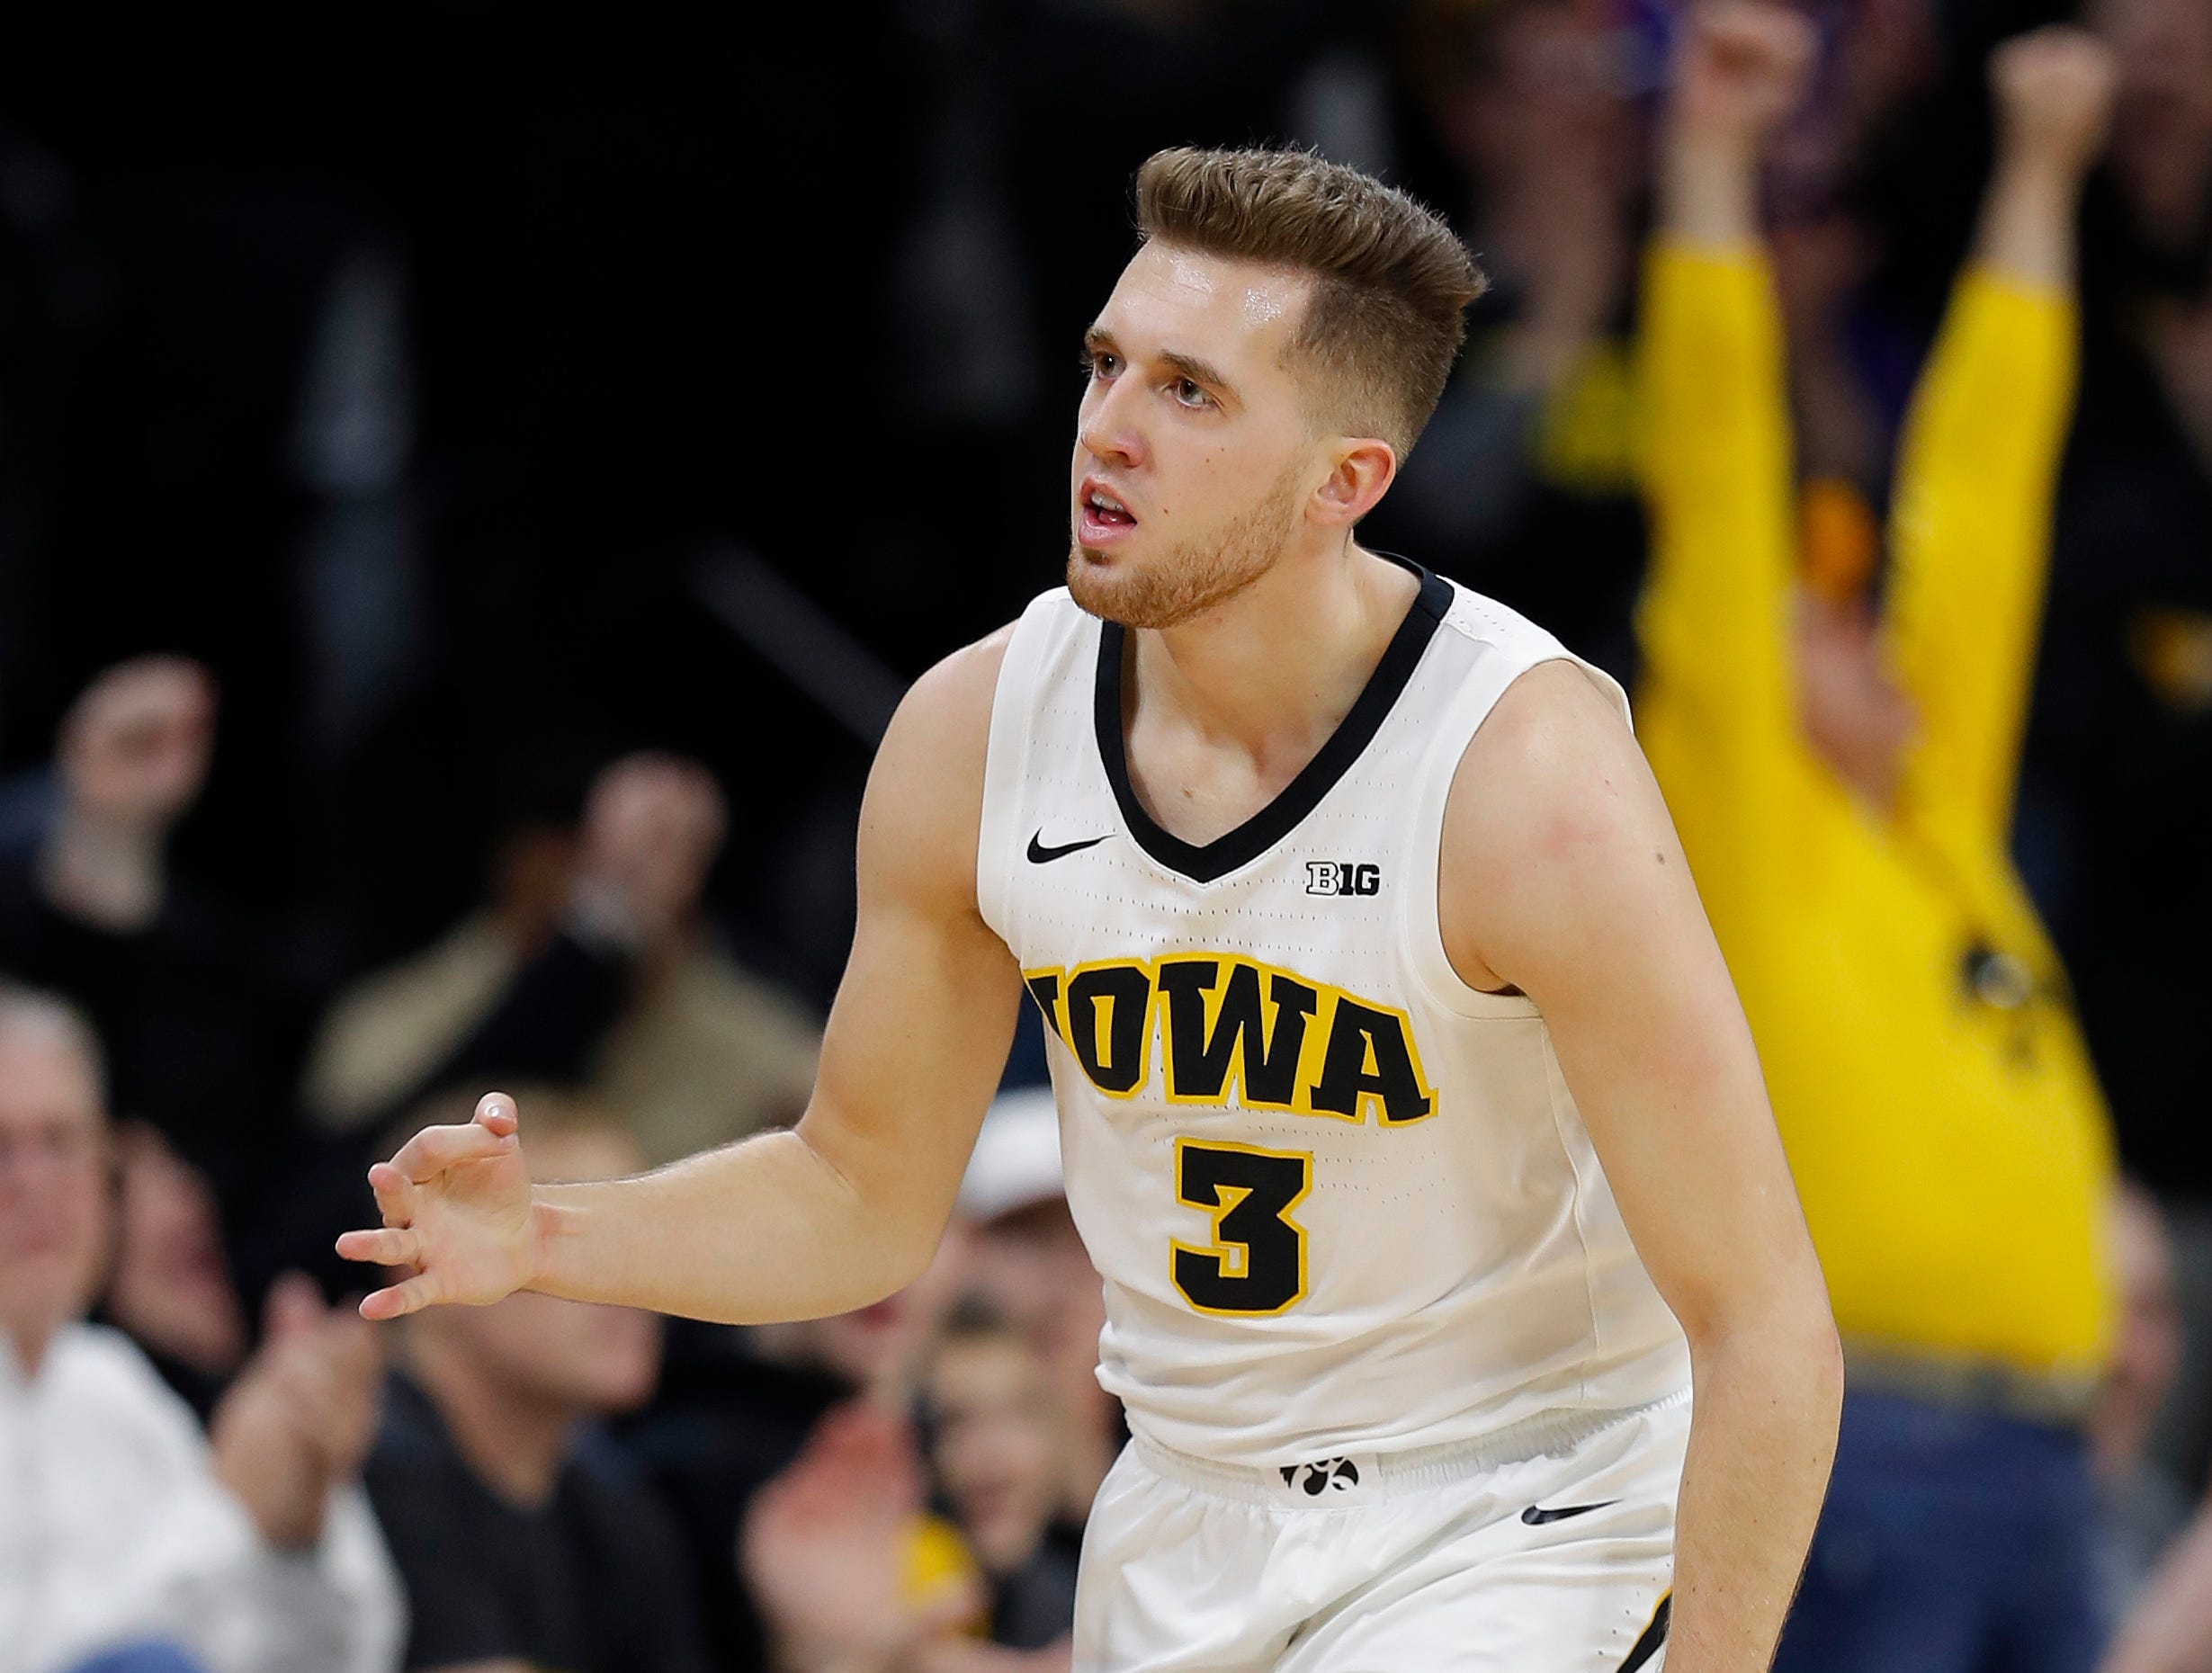 Iowa guard Jordan Bohannon celebrates a 3-point basket against Ohio State during the first half of an NCAA college basketball game, Saturday, Jan. 12, 2019, in Iowa City, Iowa.